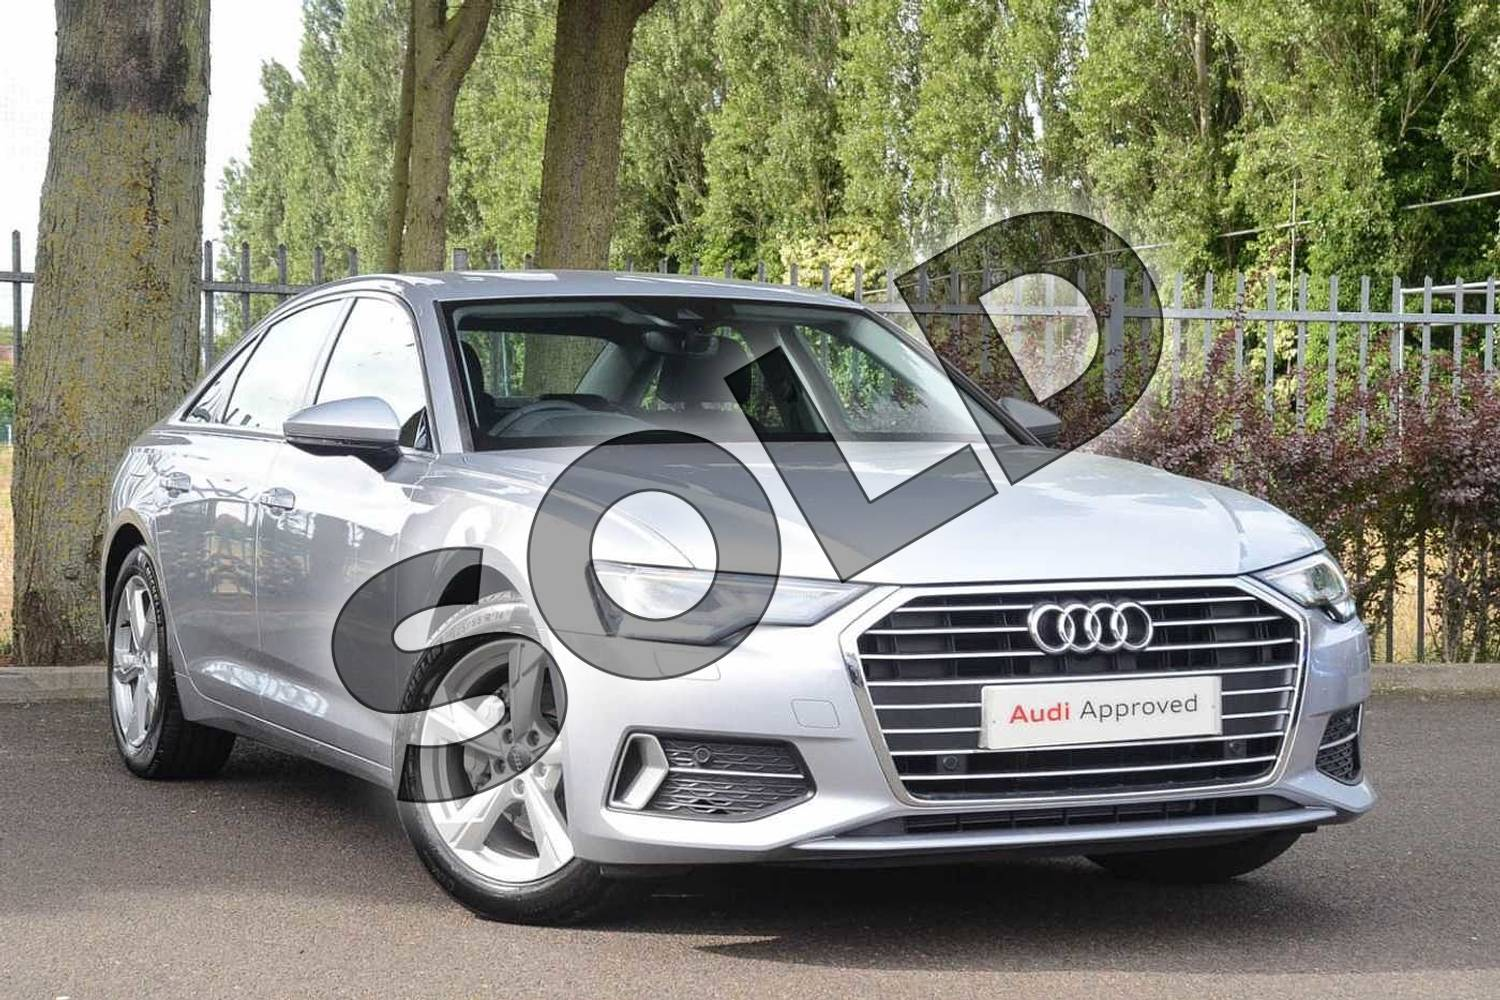 2019 Audi A6 Diesel Saloon Diesel 40 TDI Sport 4dr S Tronic in Floret Silver Metallic at Coventry Audi